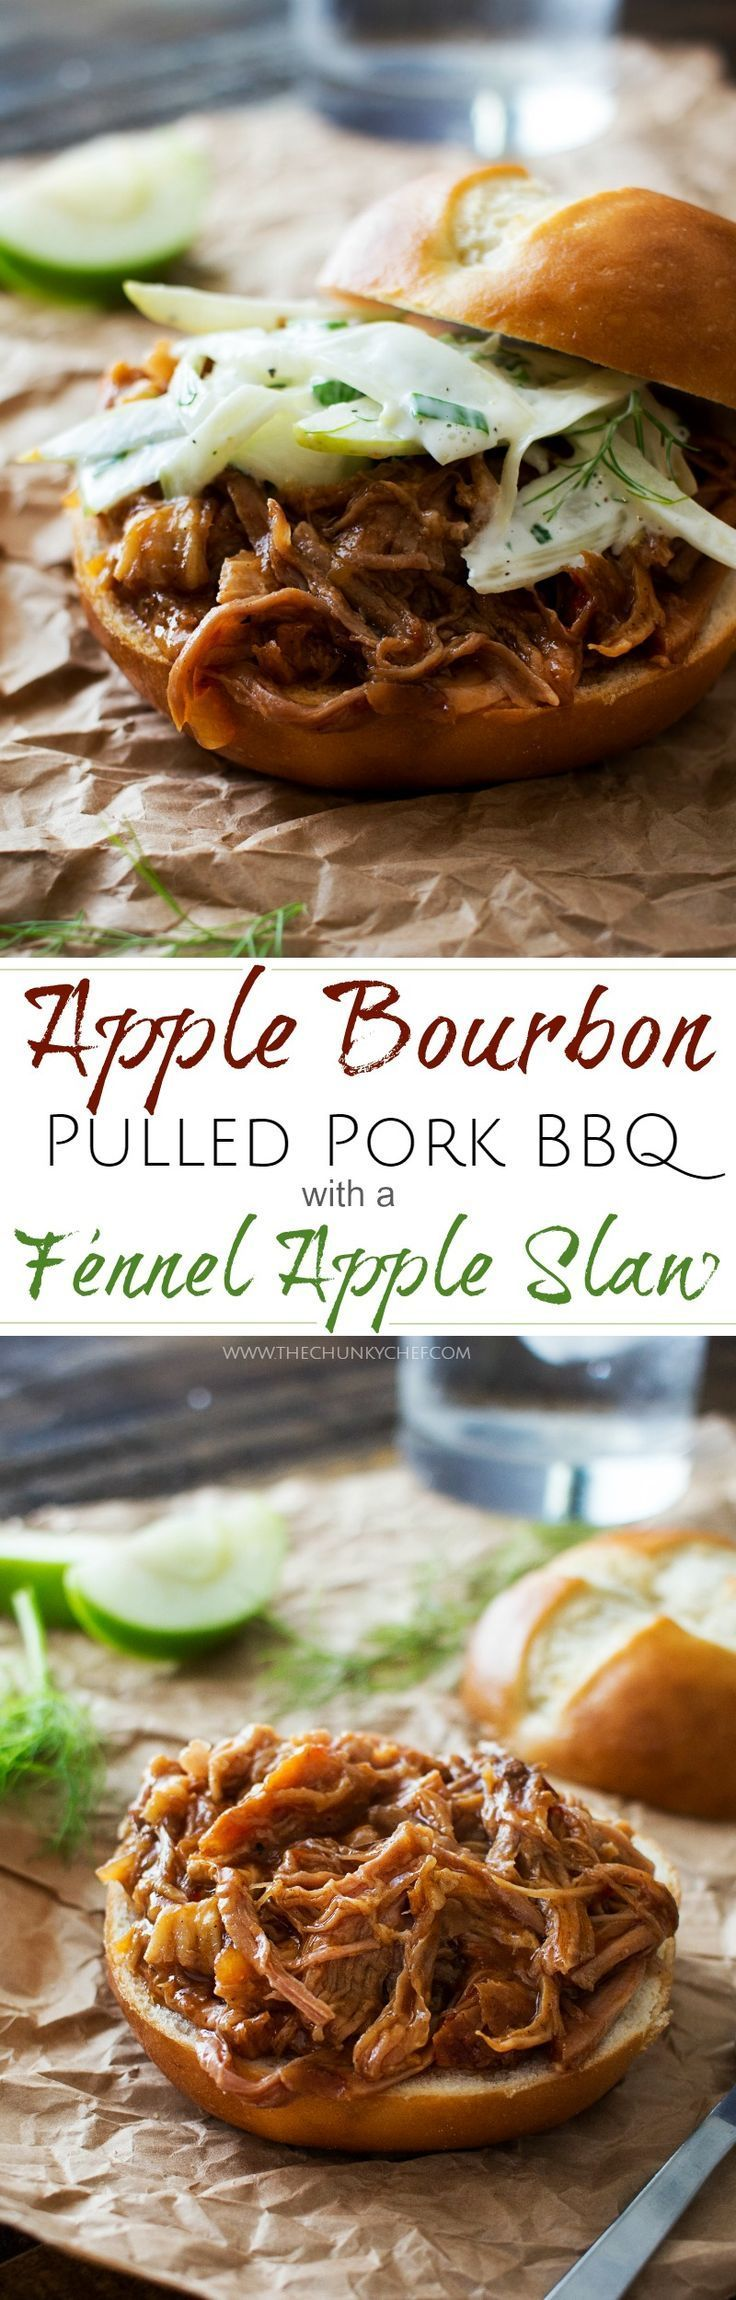 Apple Bourbon Pulled Pork Sandwiches | The Chunky Chef | Soft pretzel buns filled with tender, juicy apple bourbon pulled pork and topped with a refreshing apple fennel slaw. The King of pulled pork sandwiches!